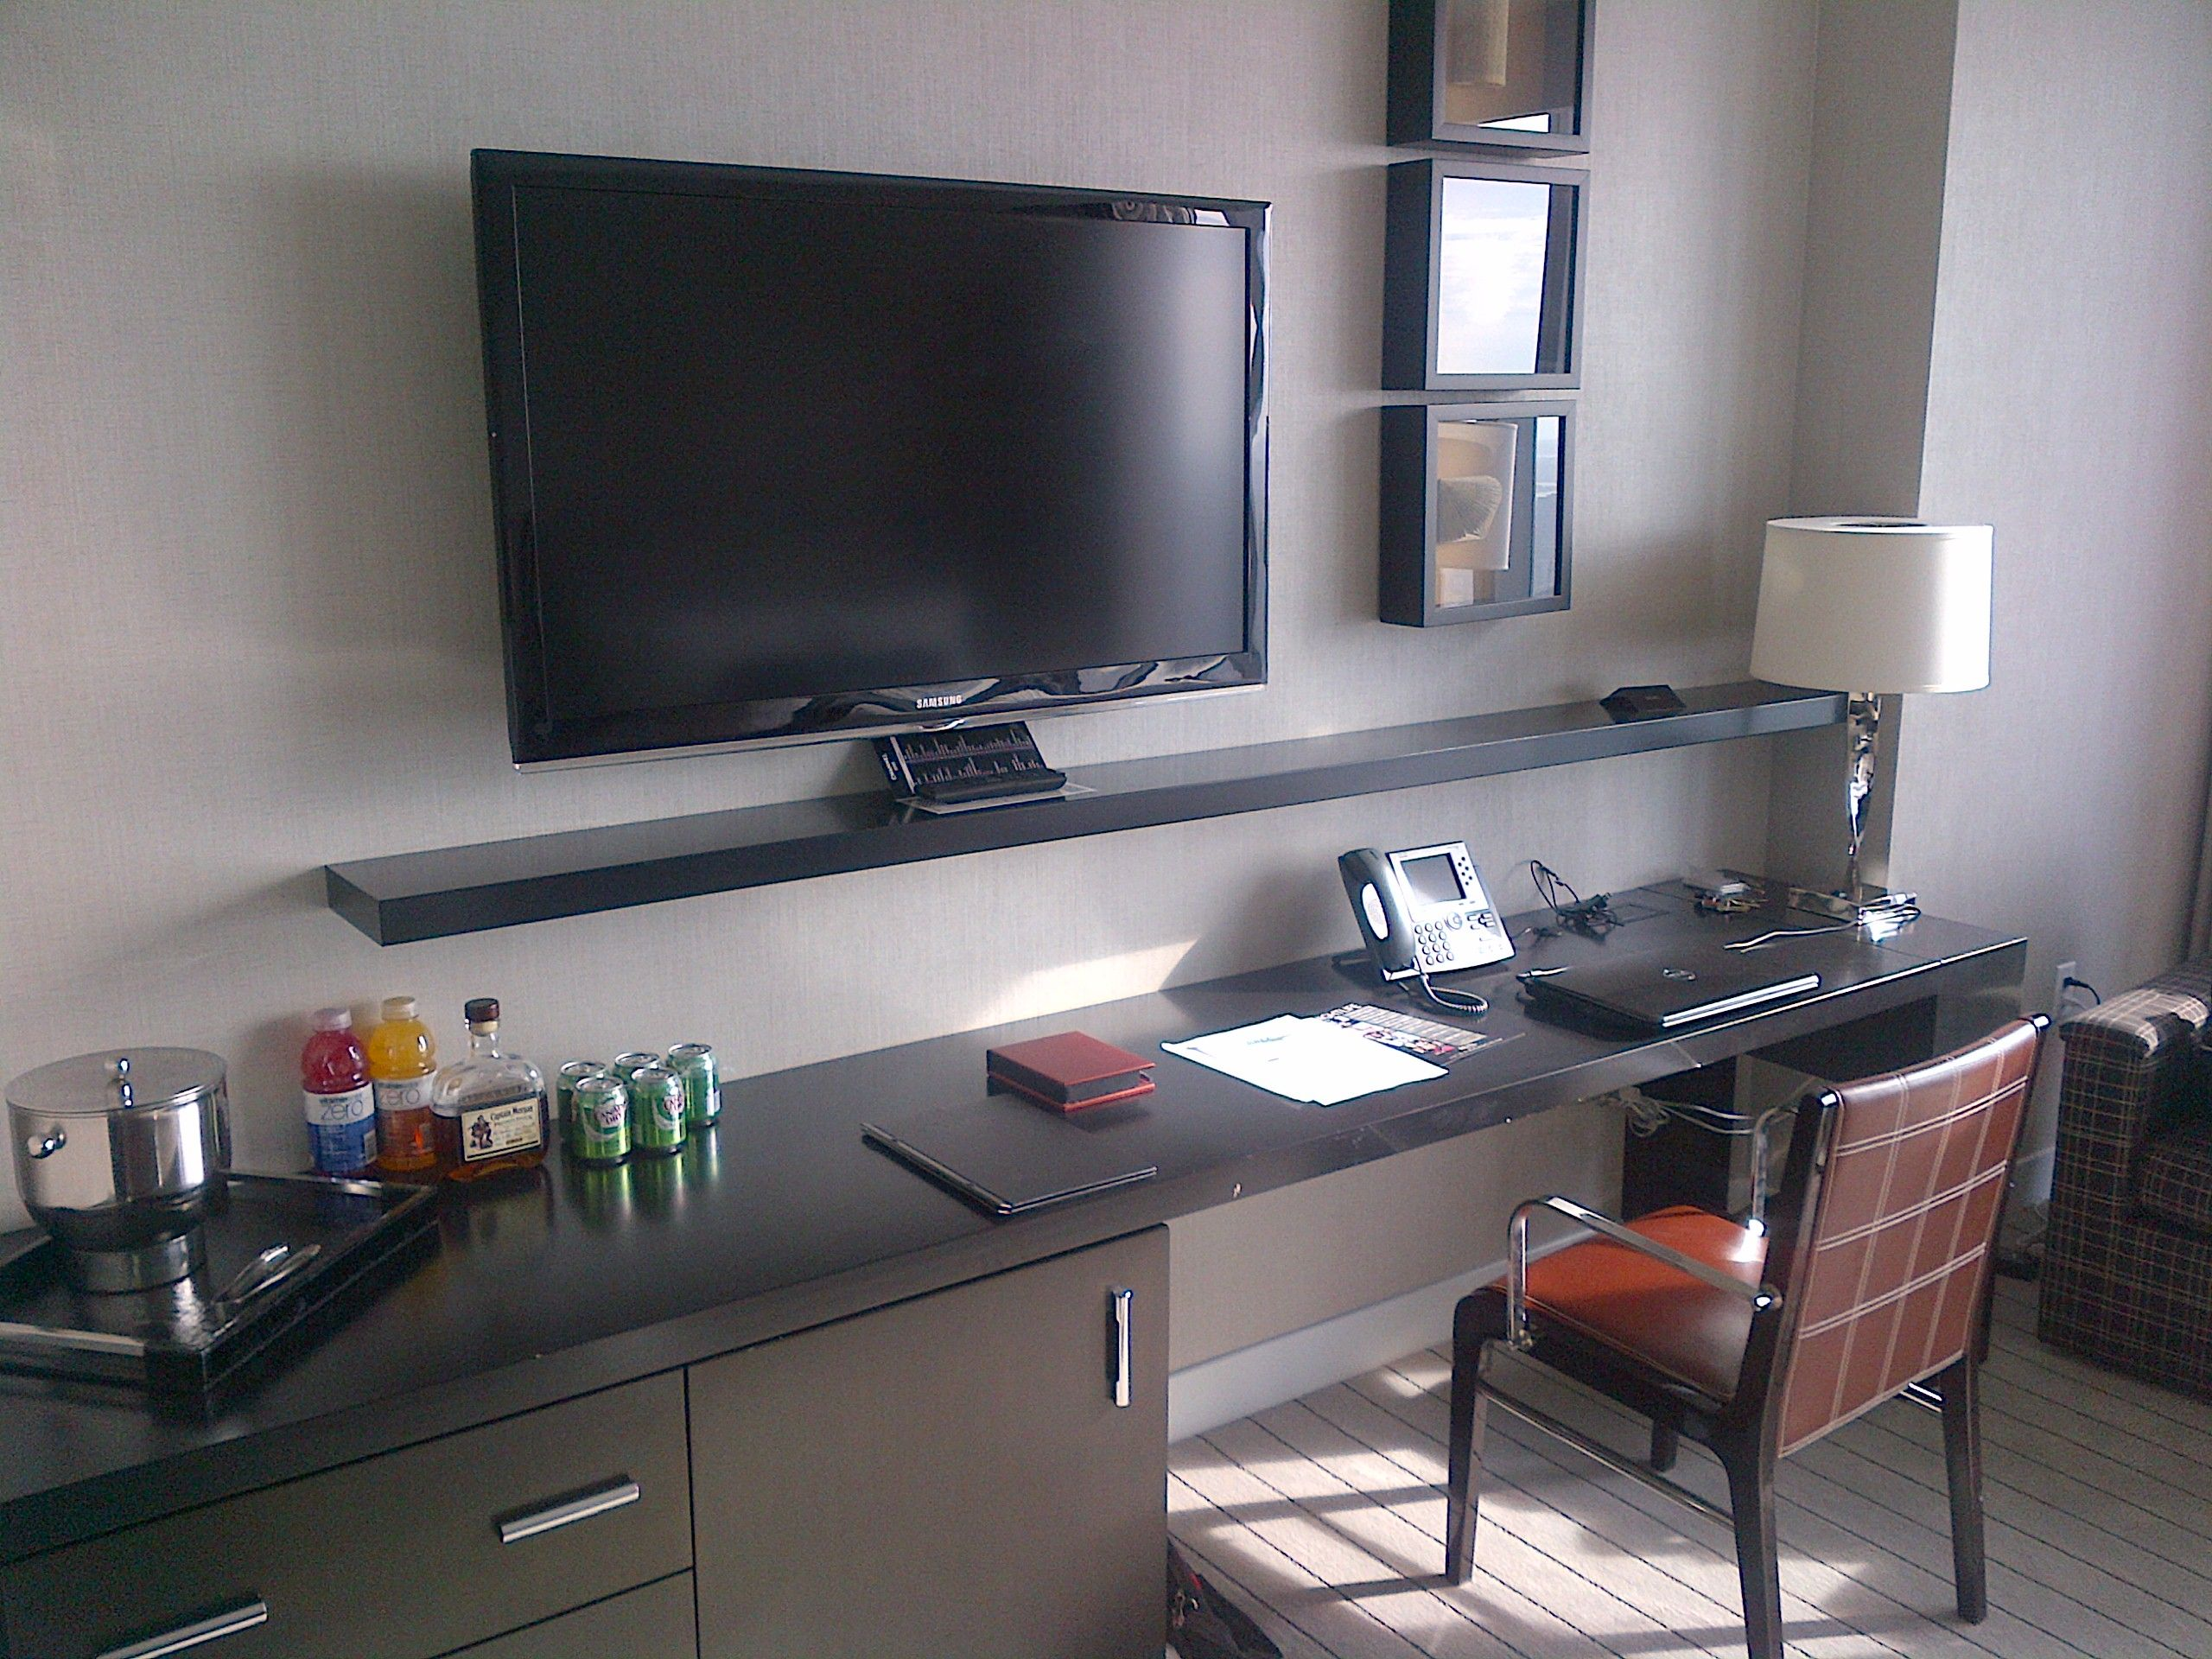 File:Revel Atlantic City hotel room.jpg - Wikimedia Commons